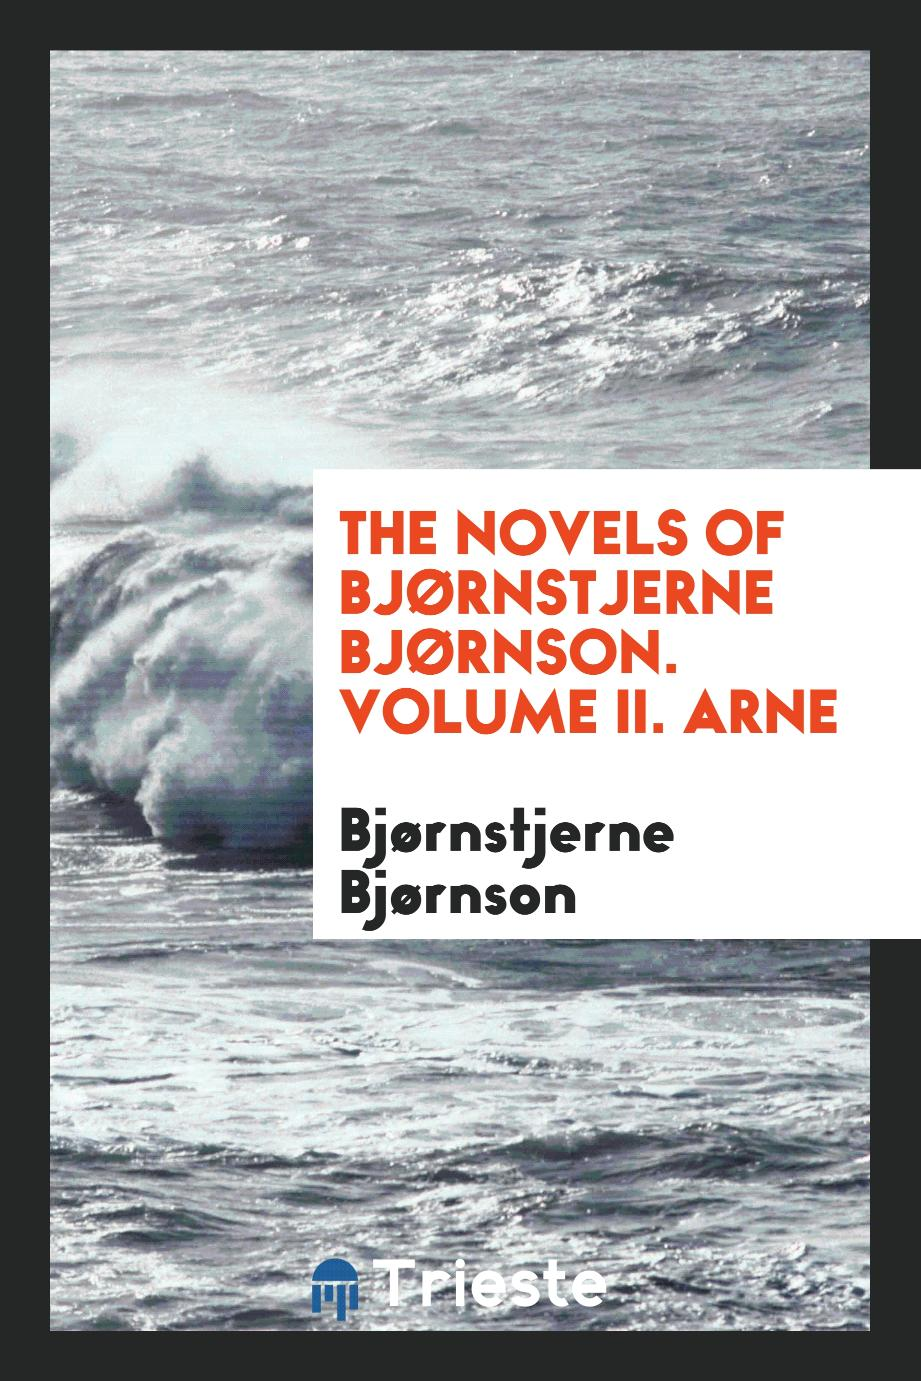 The Novels of Bjørnstjerne Bjørnson. Volume II. Arne